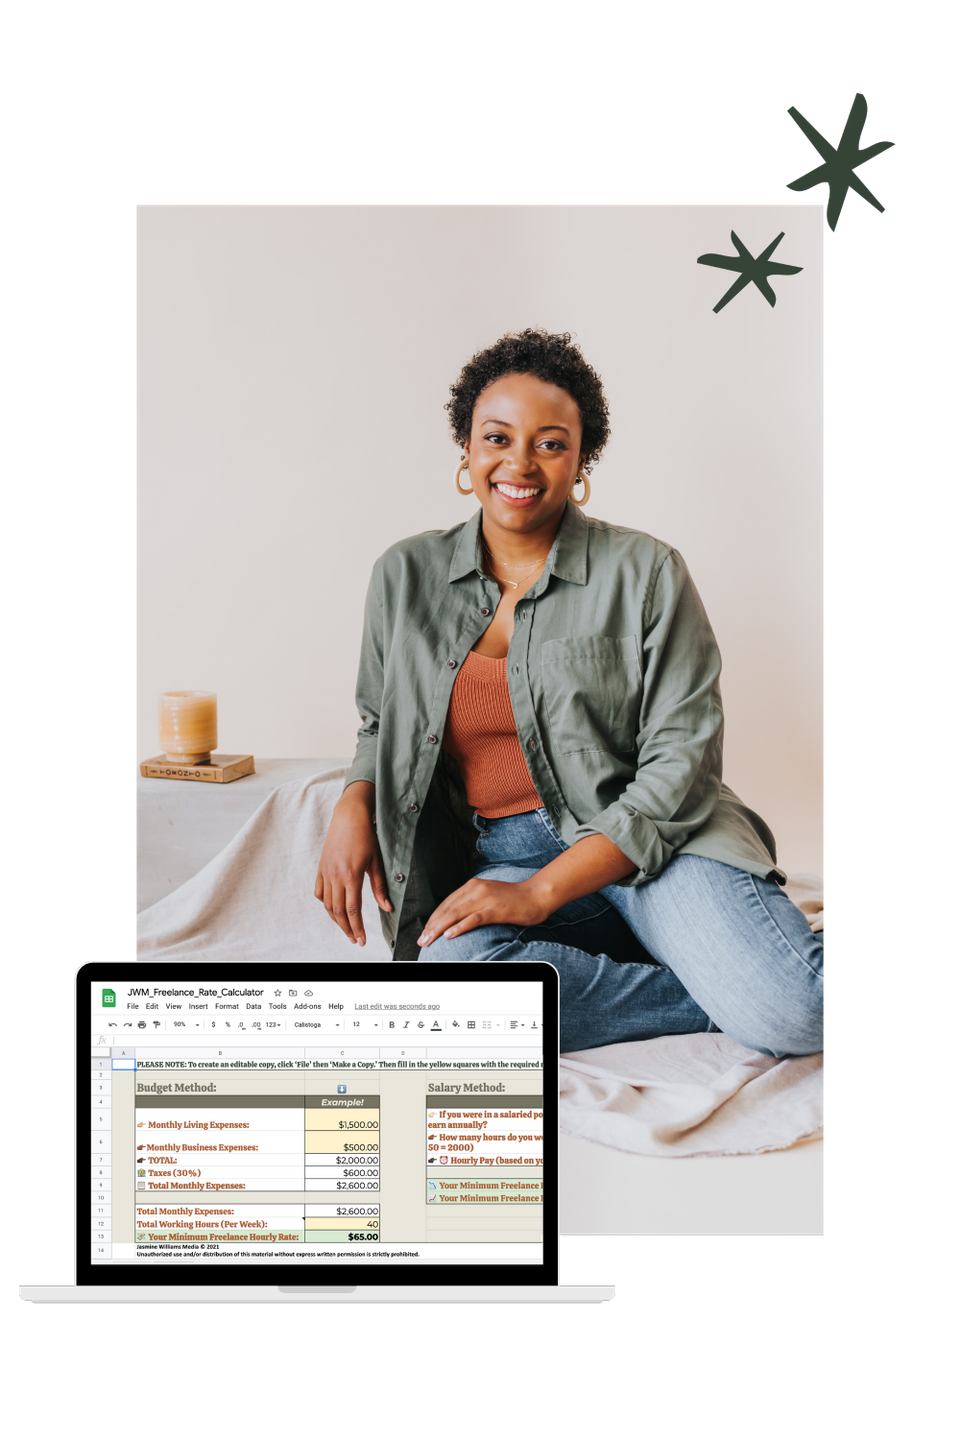 Image of Jasmine sitting in a chair and smiling, with a mockup of the checklist on an iPad in front of her